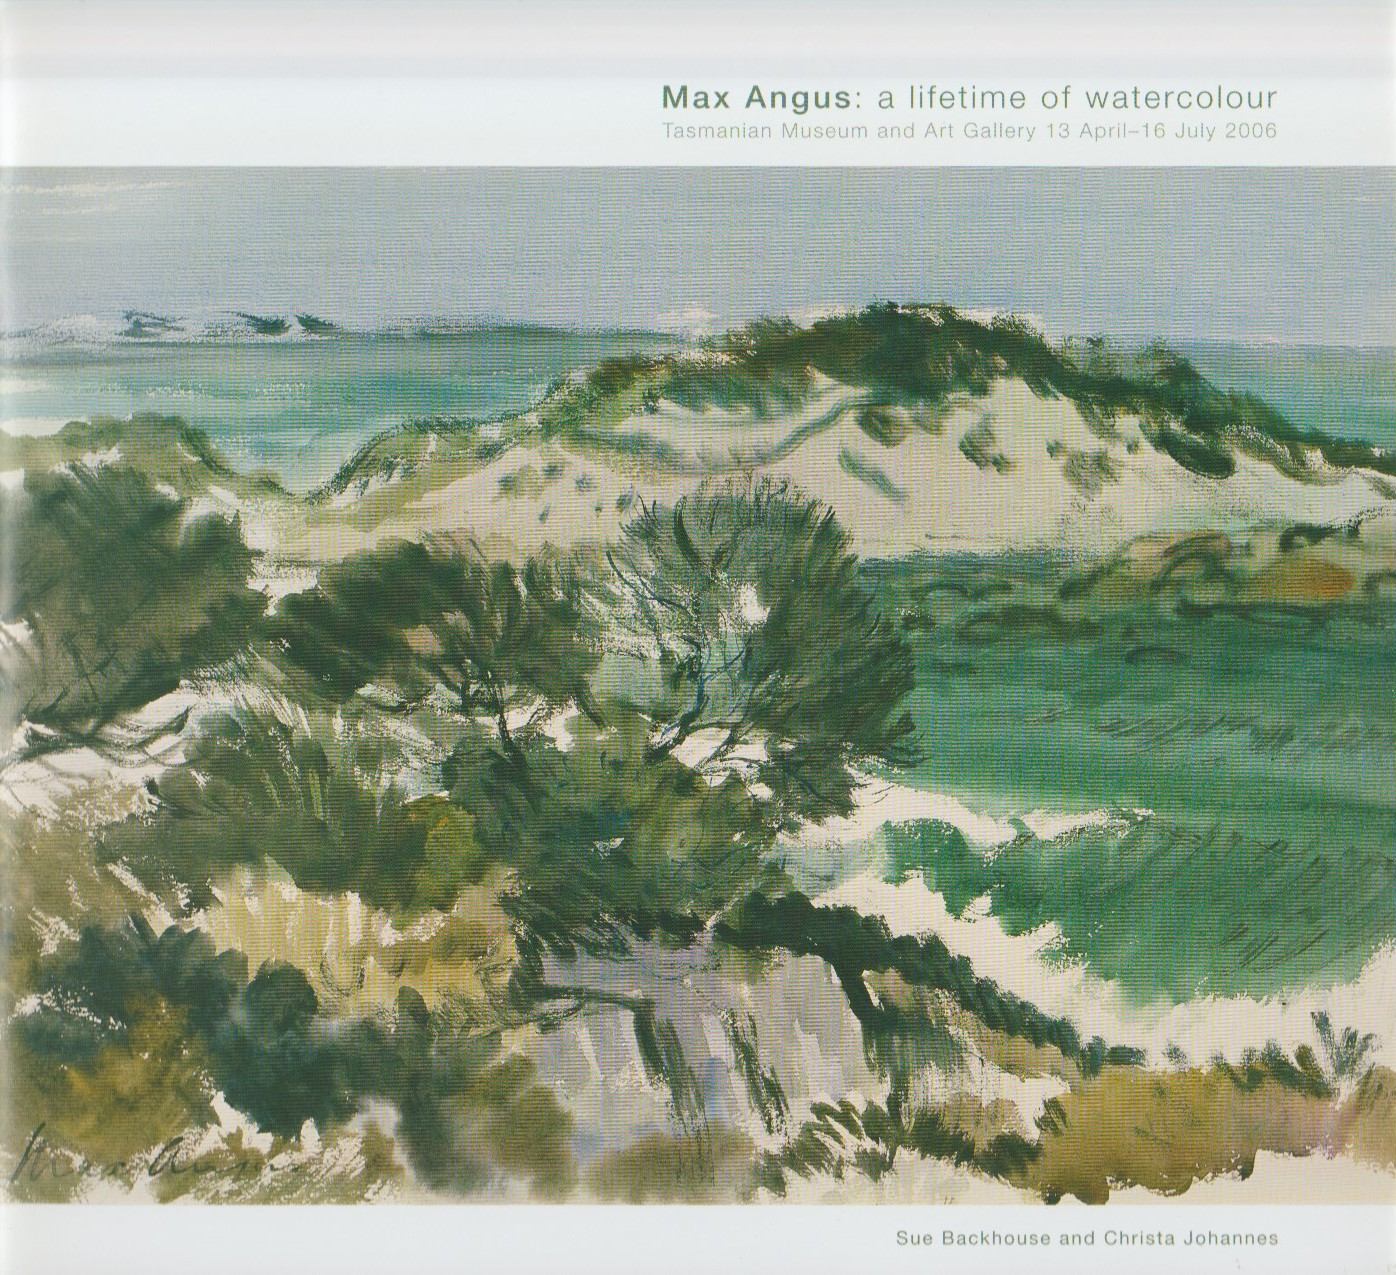 Max Angus - a lifetime of watercolour